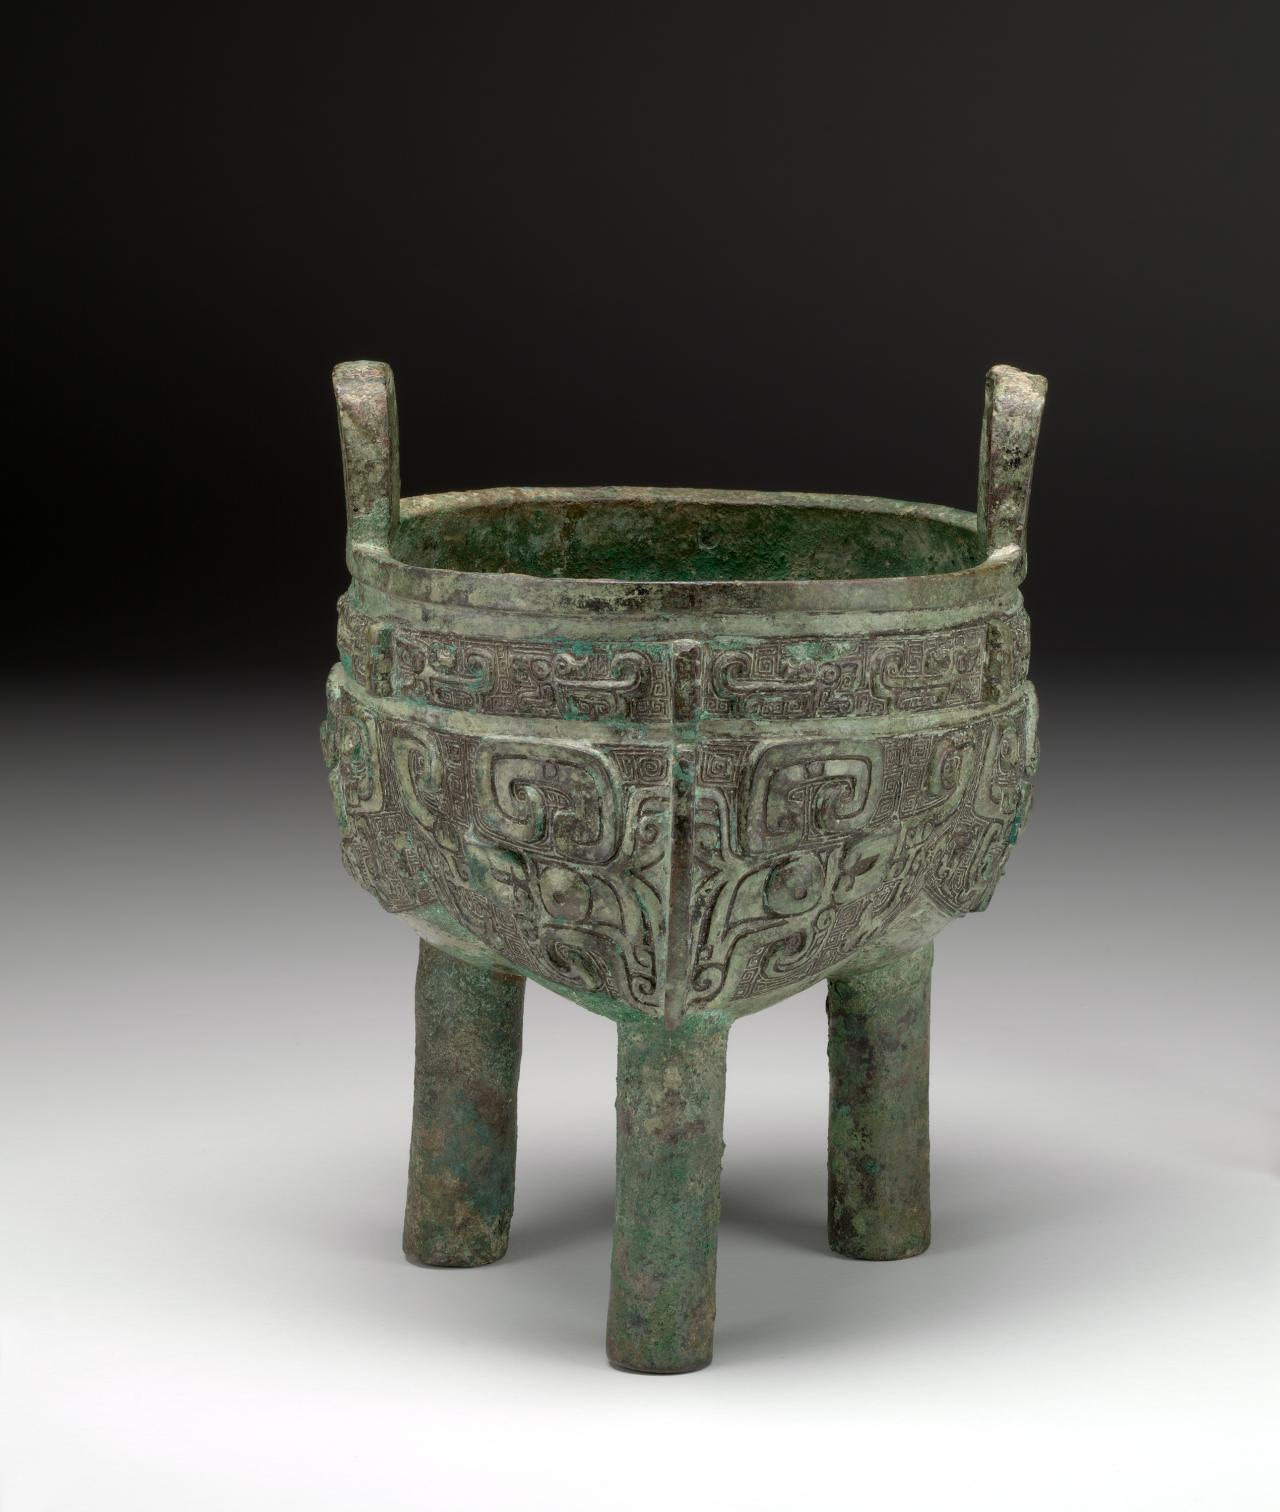 Cooking vessel, Liding